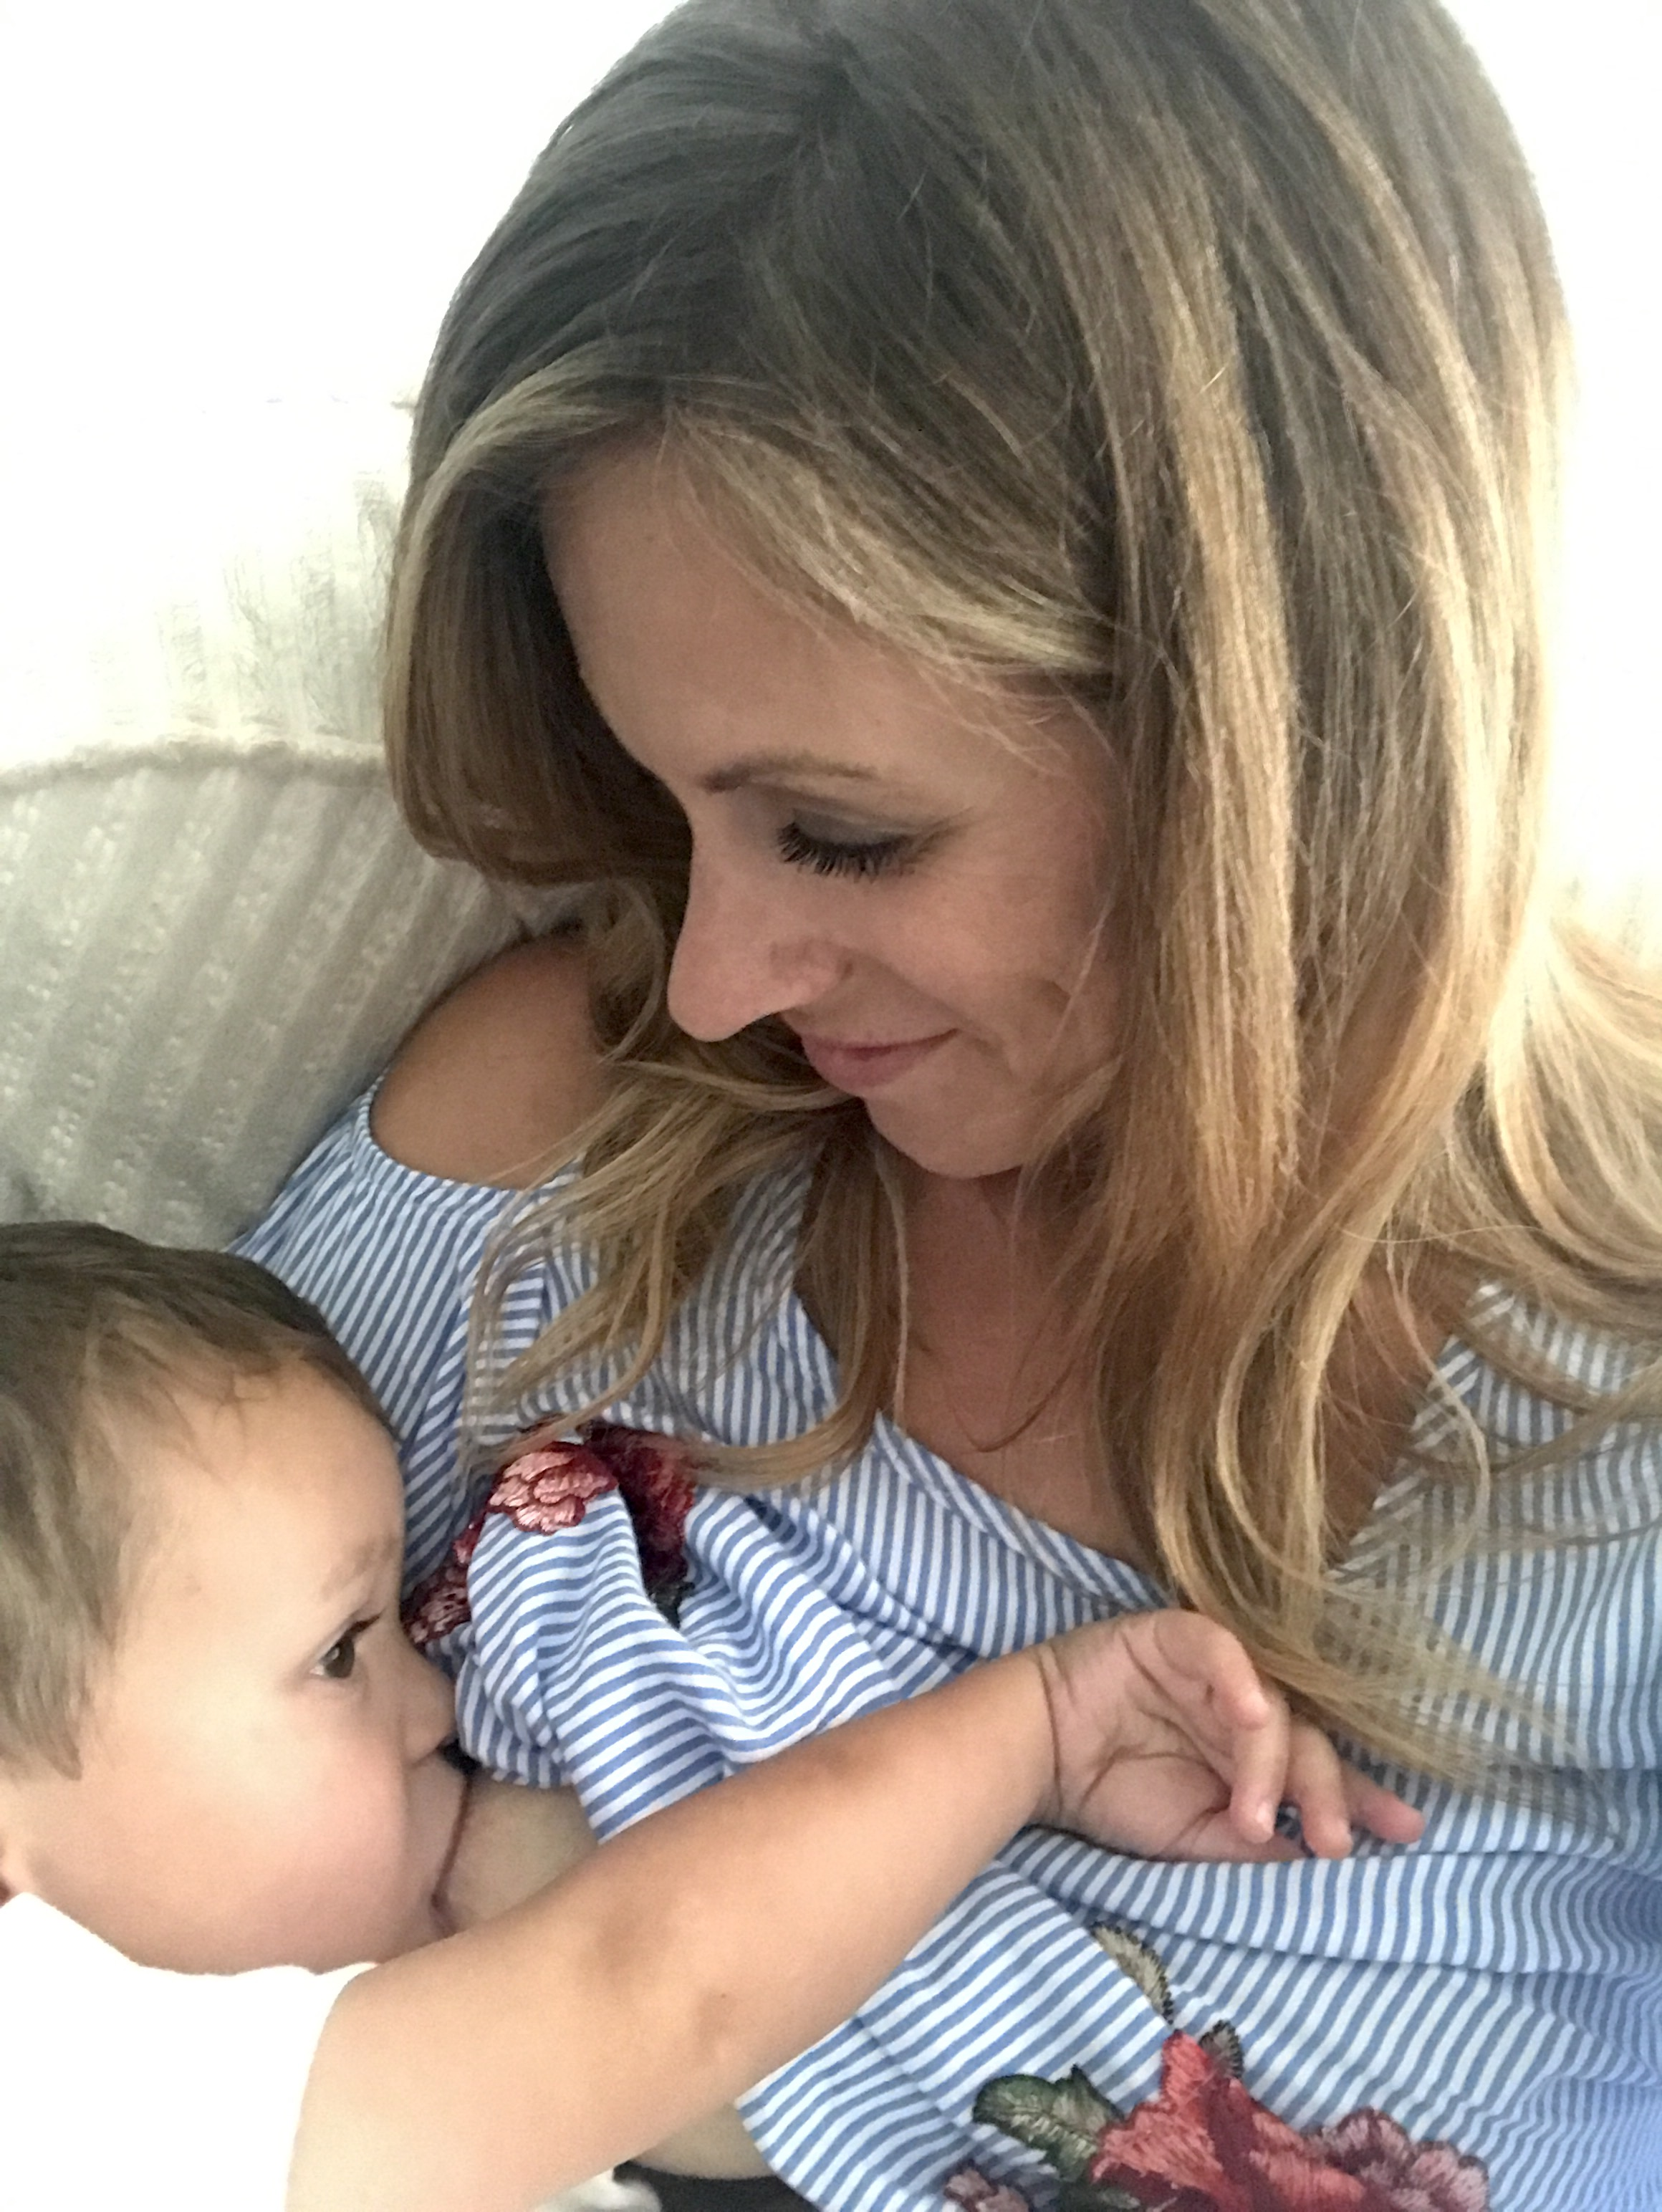 Happy World Breastfeeding Week!  One of my biggest passions in life is supporting my Momma friends on their individual breastfeeding journeys. -